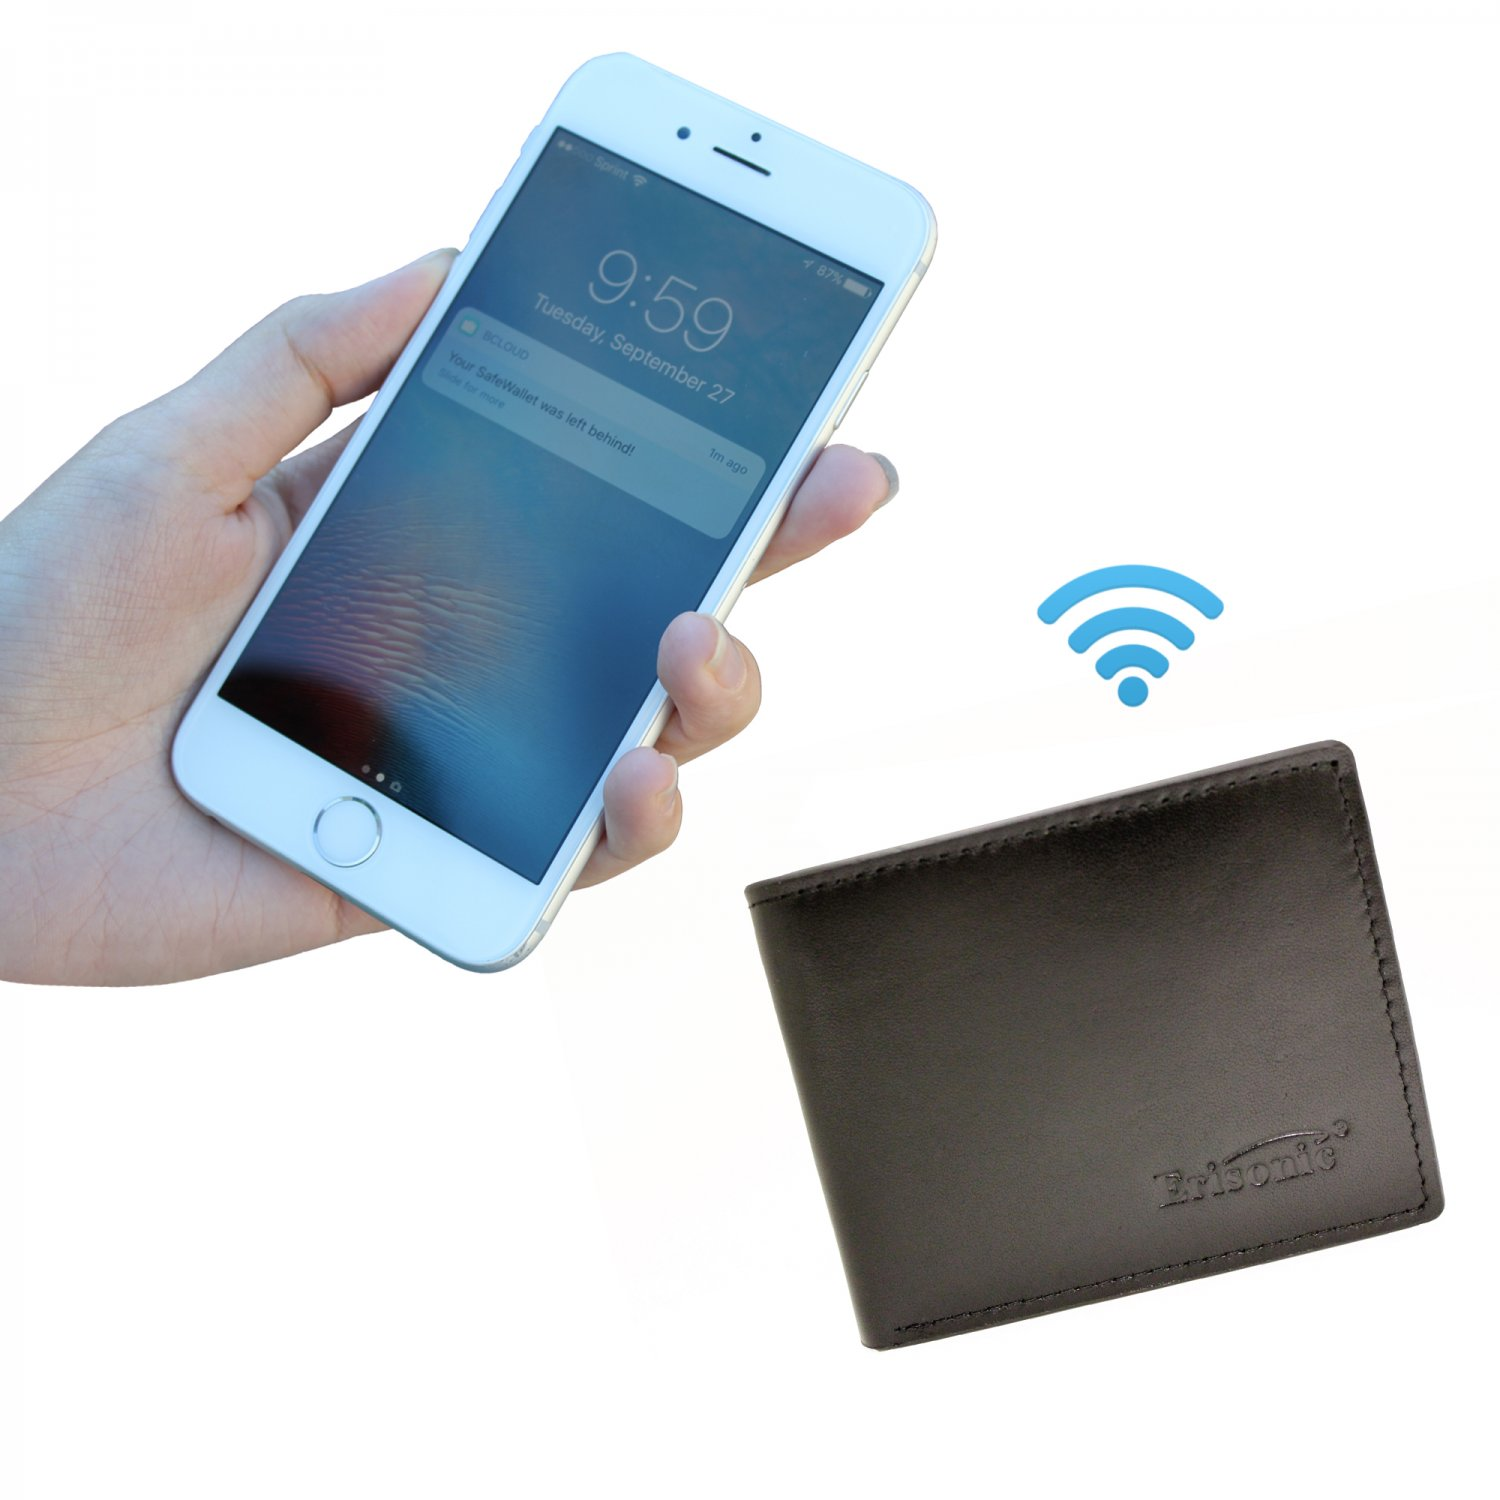 Erisonic Mens Wallet Leather Smart Wallet Bluetooth Wallet with Iphone/Android app anti-lost